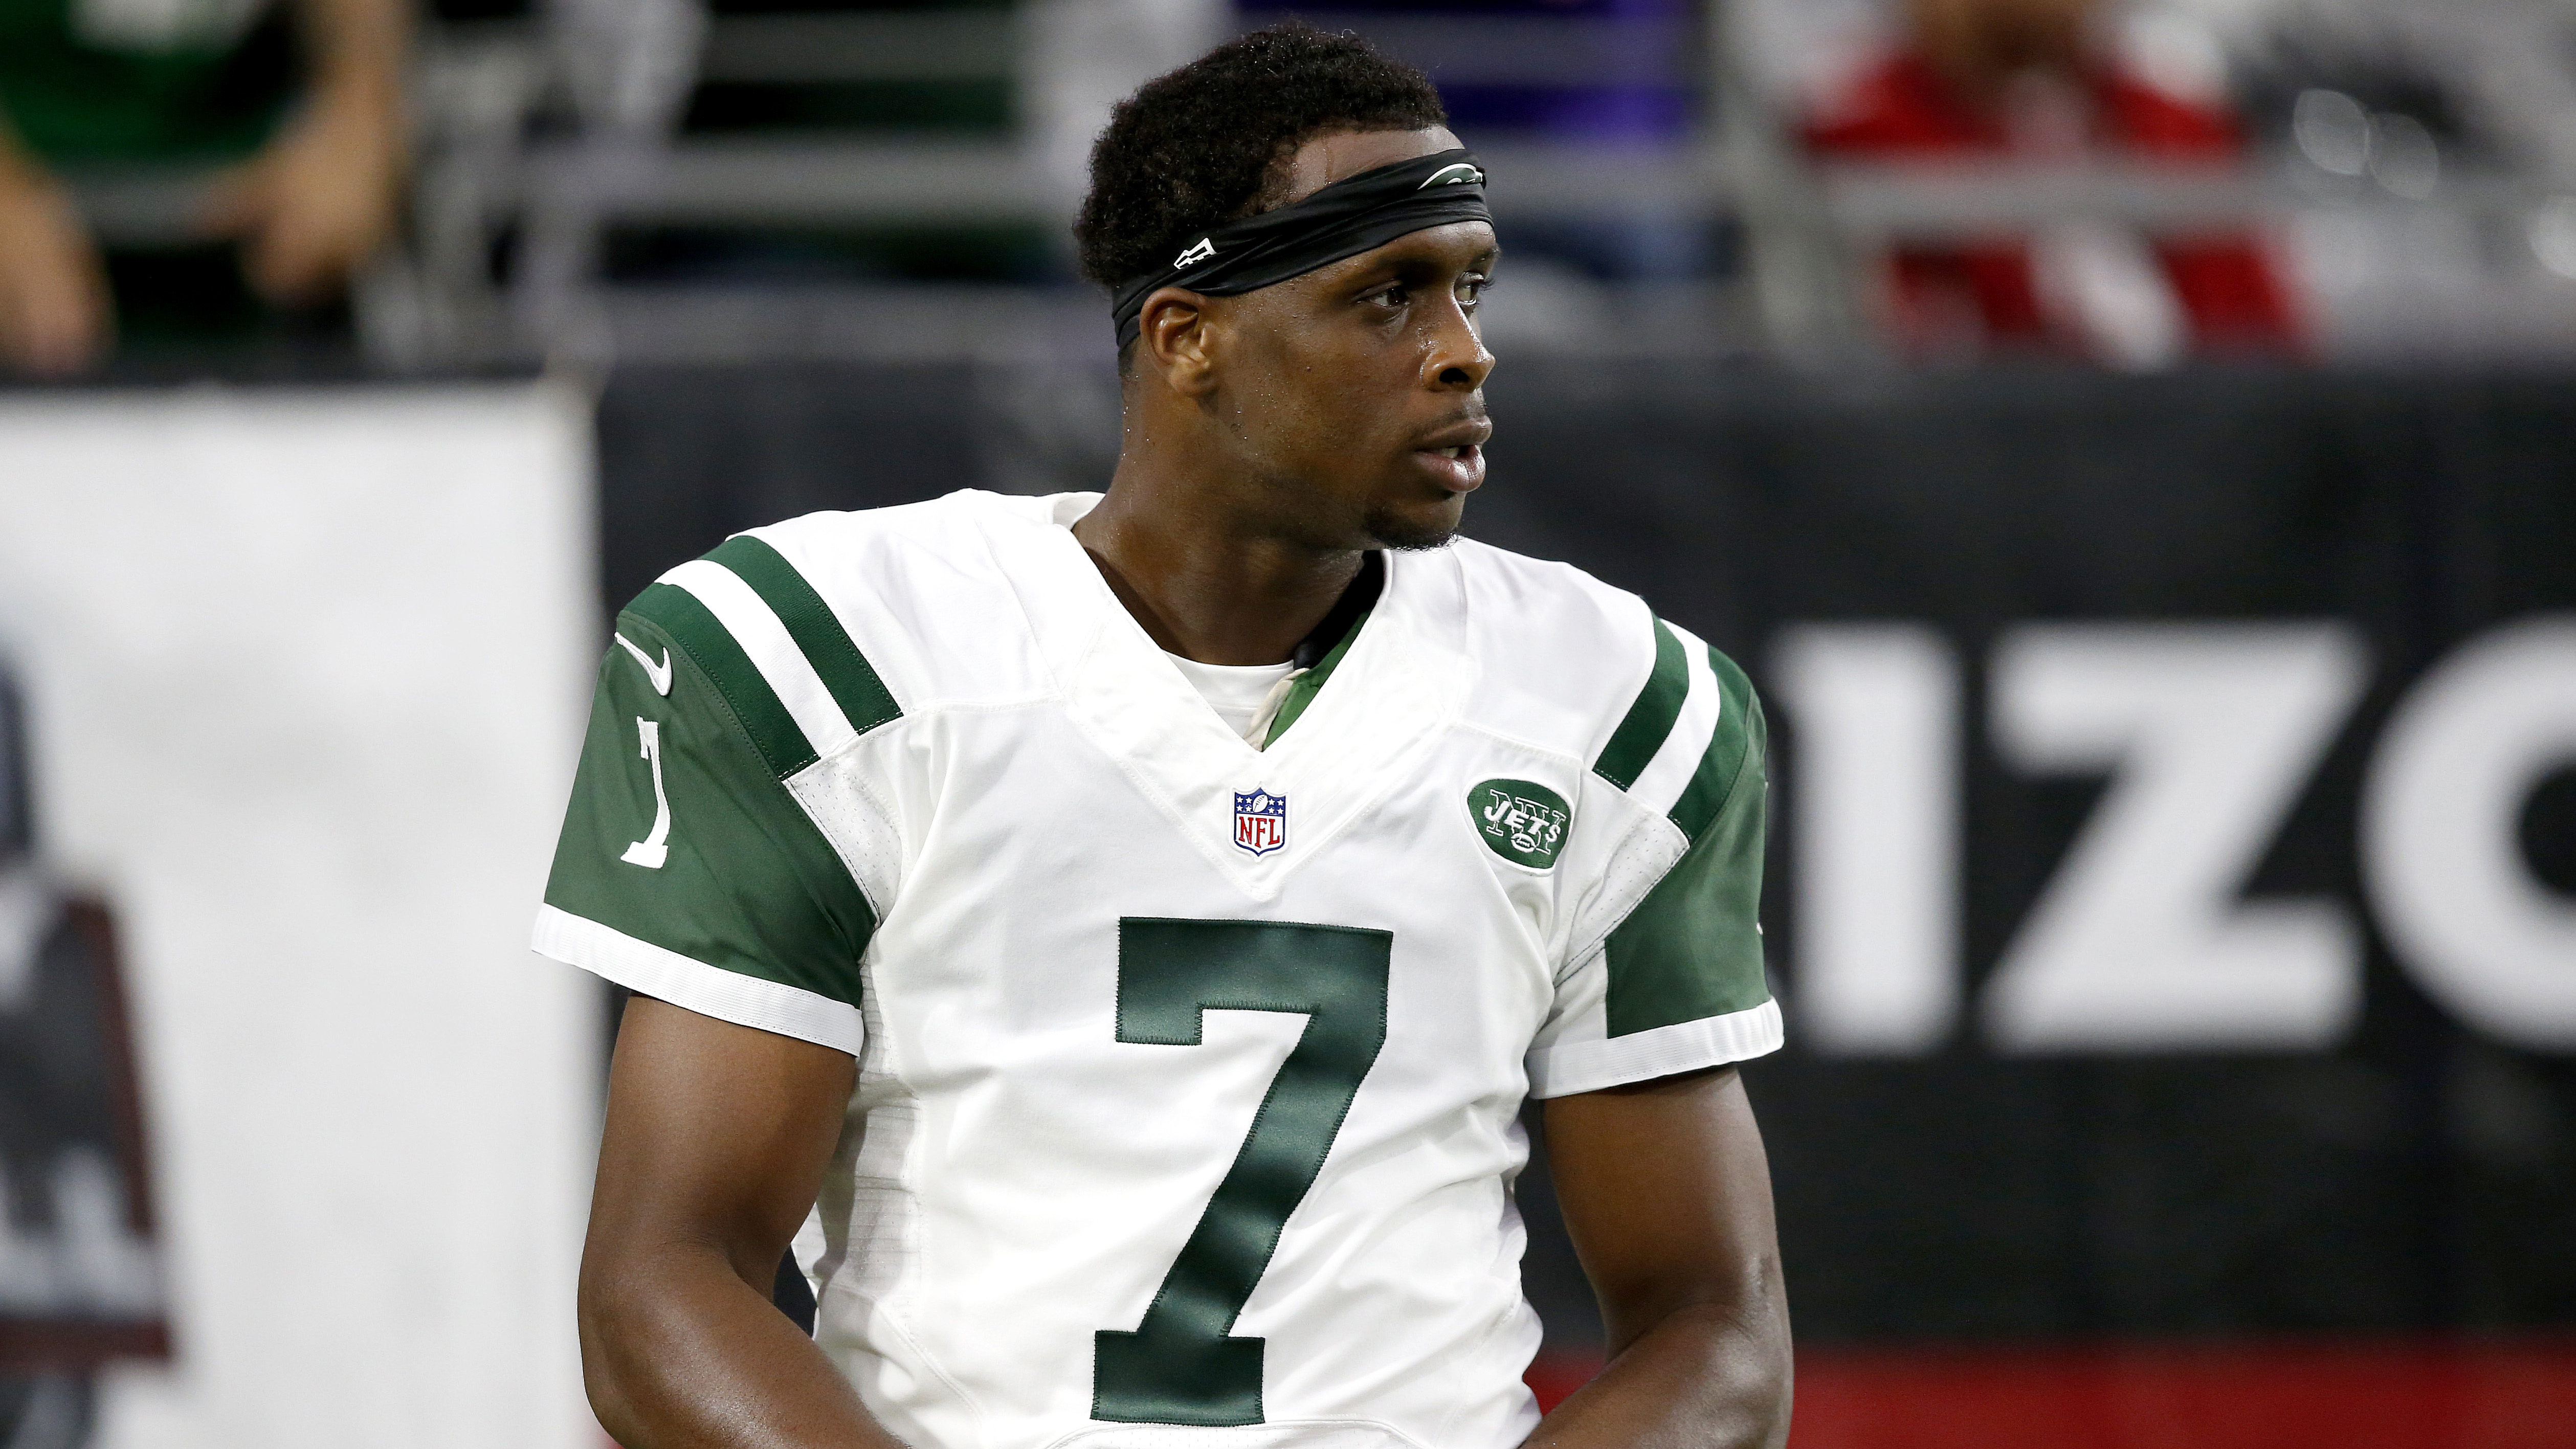 Frustration boils over for backup Geno Smith as Jets offense continues to struggle